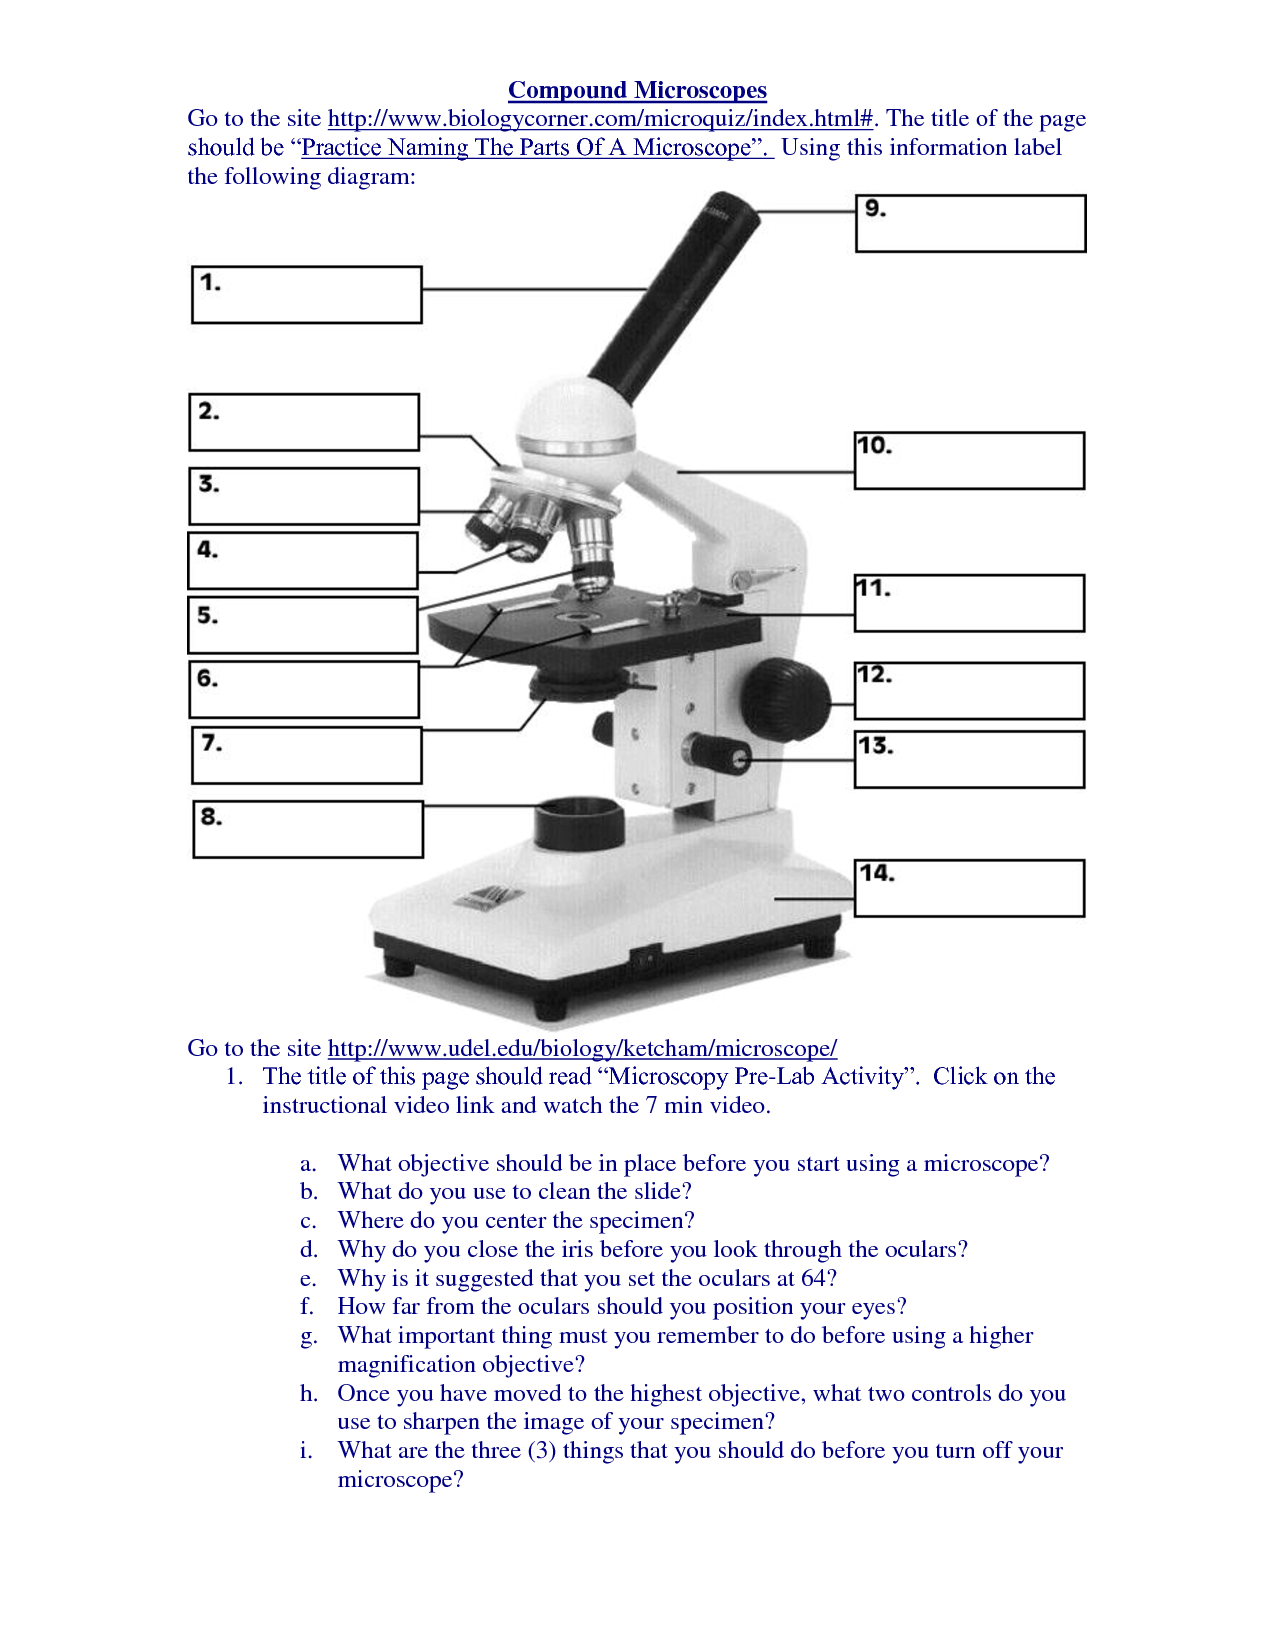 binocular compound microscope diagram craftmade ceiling fan light kit wiring parts of a lara expolicenciaslatam co microscopes 5 the quiz biological